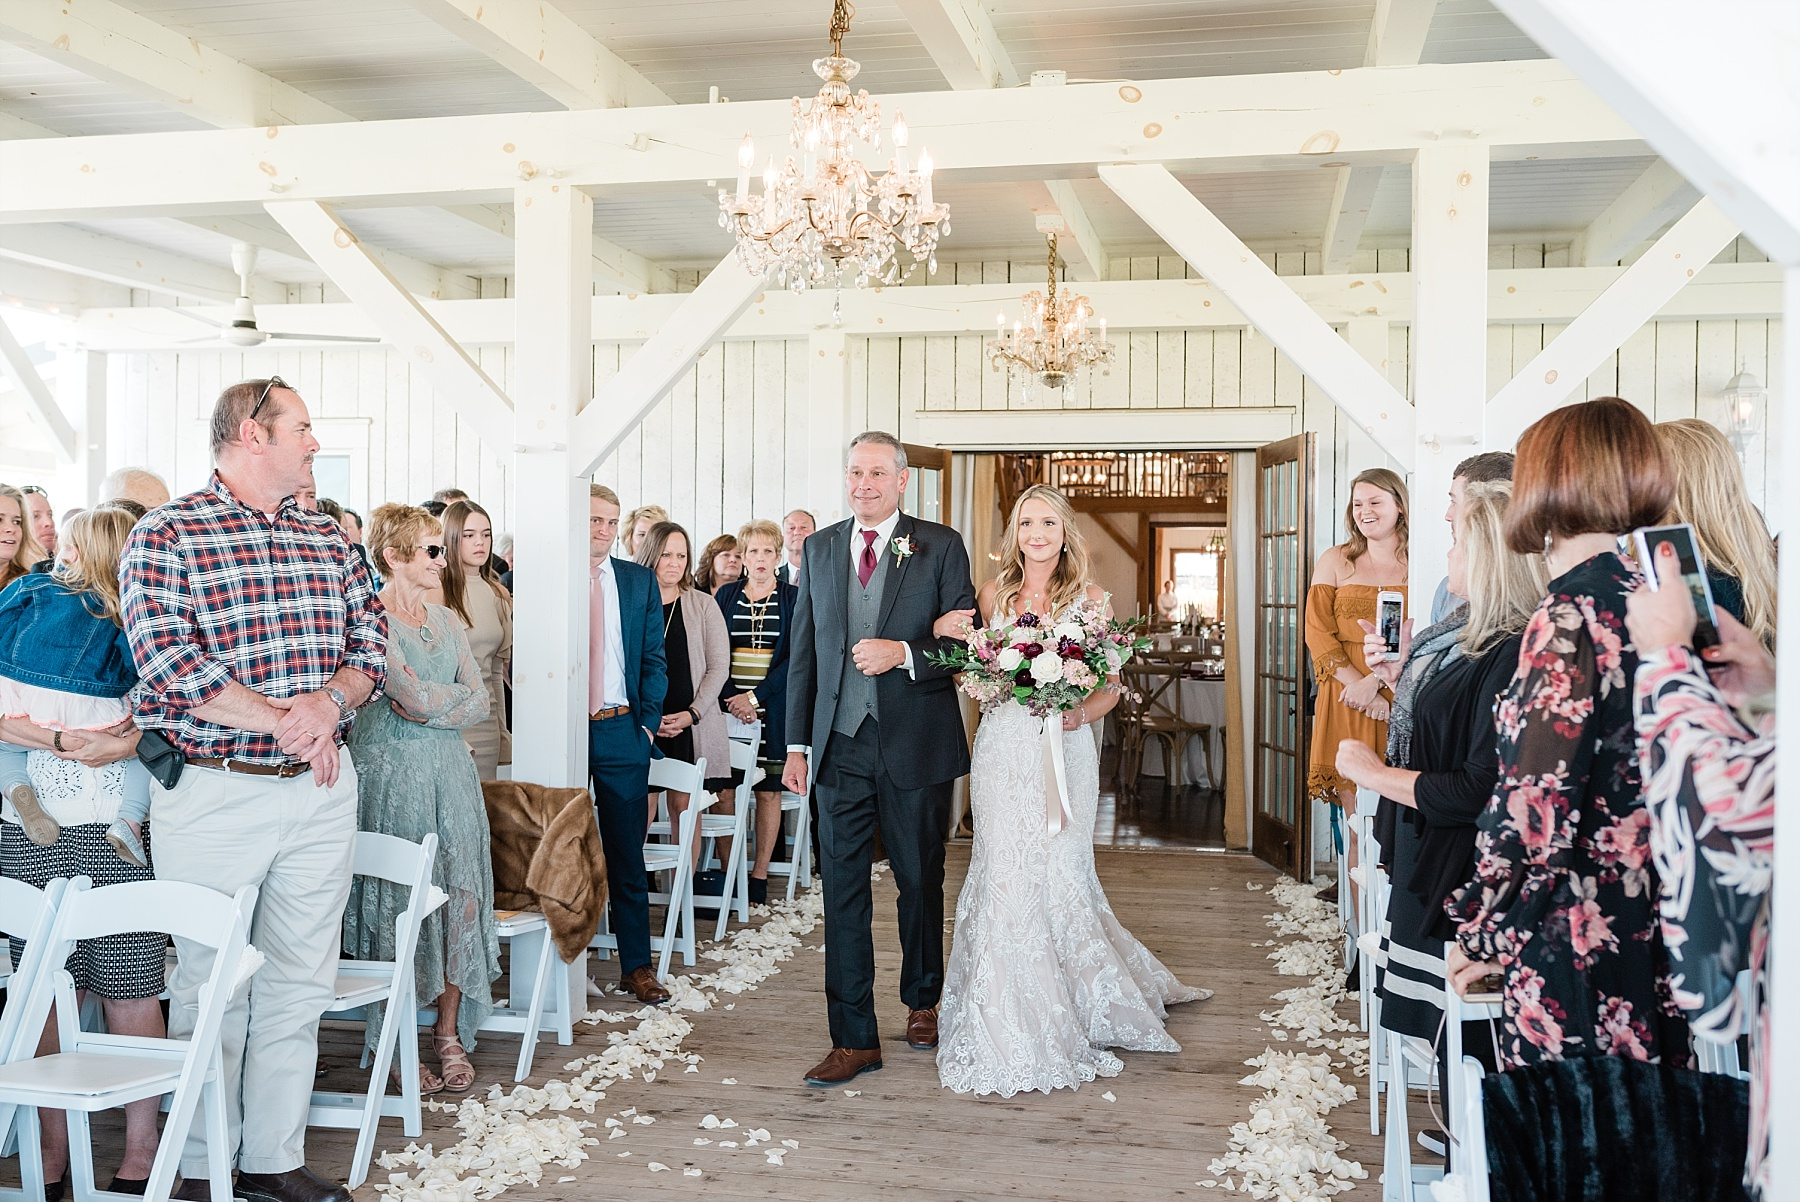 Golden Autumn Outdoor Wedding with Ivory, Bergundy, and Blush Color Palette at Blue Bell Farms  by Kelsi Kliethermes Photography_0025.jpg